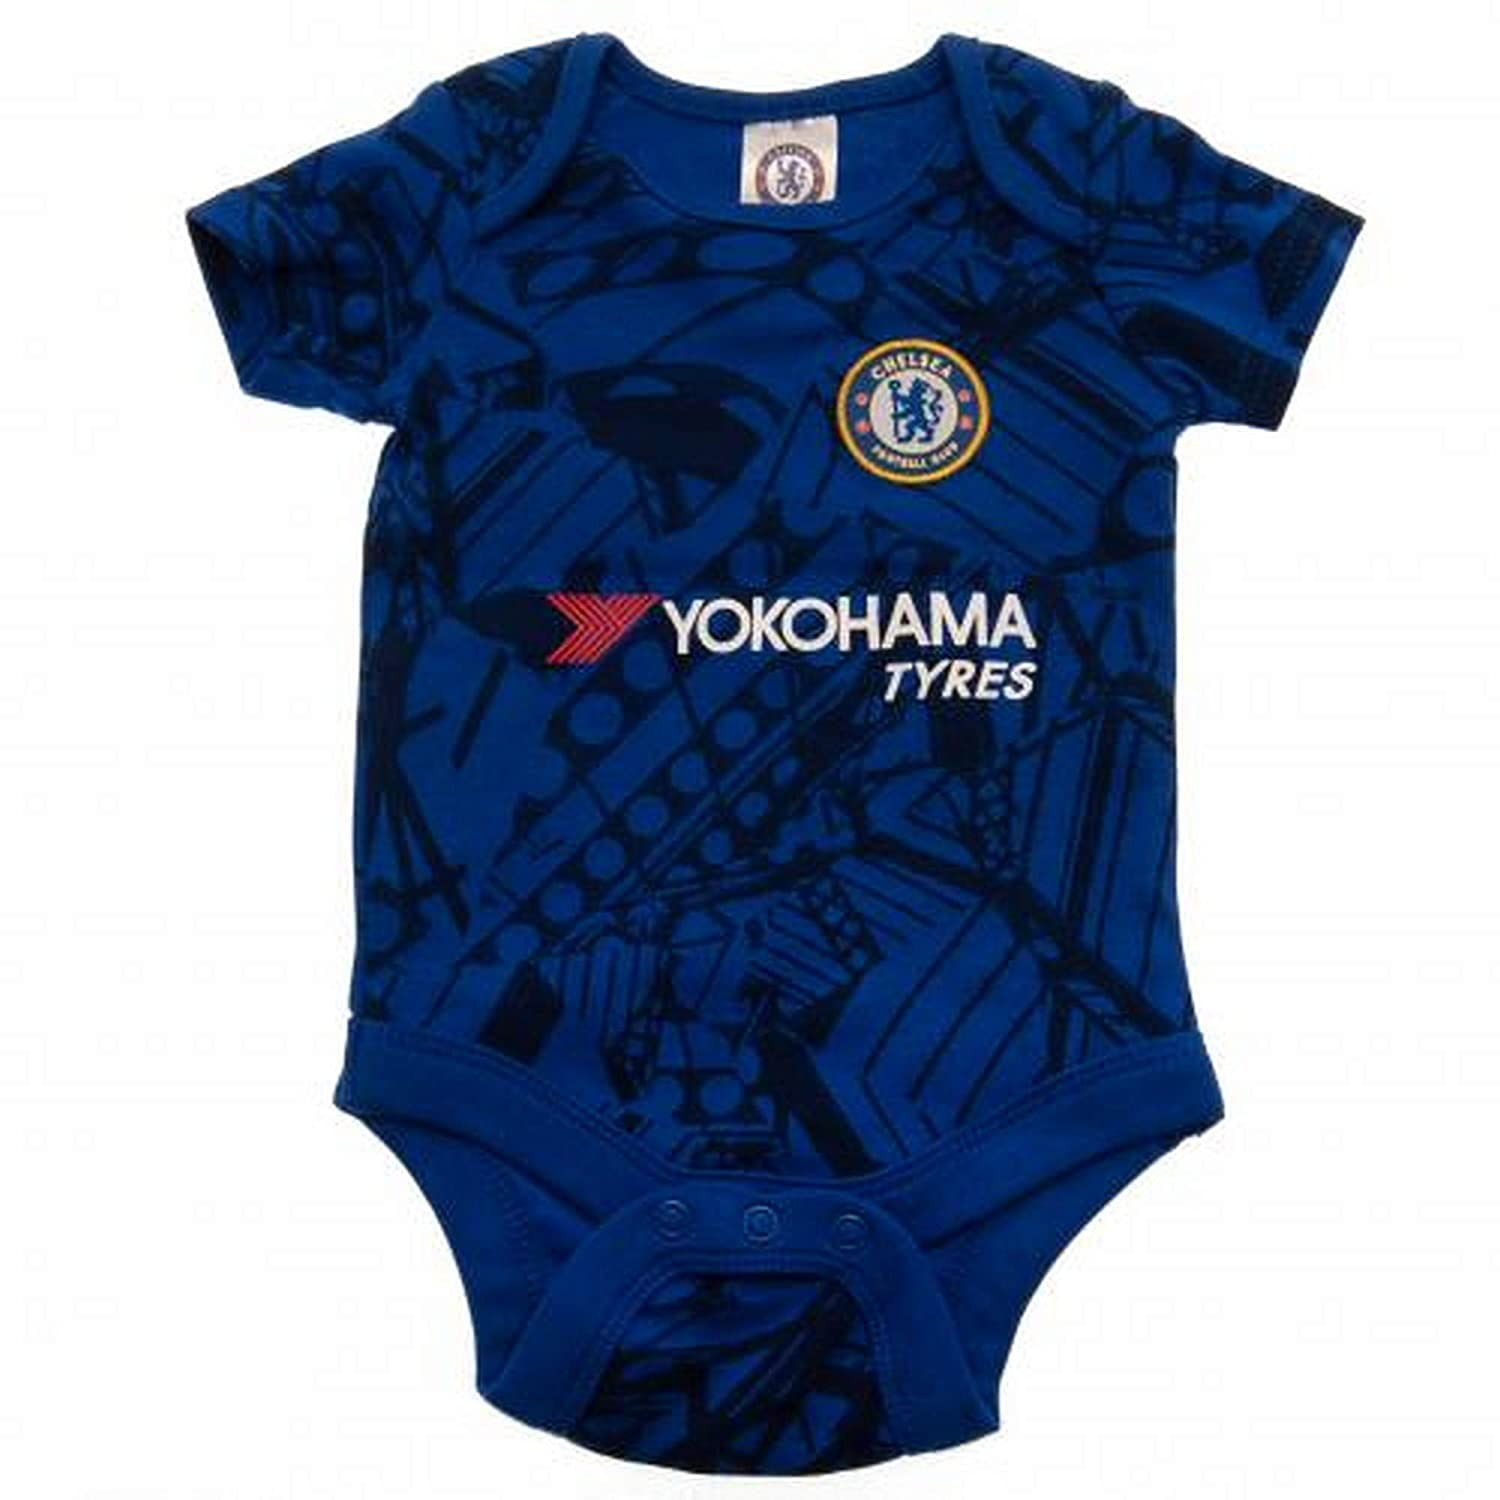 0-3 Months Blue//White Chelsea Baby Kit 2 Pack Bodysuits 2019//20